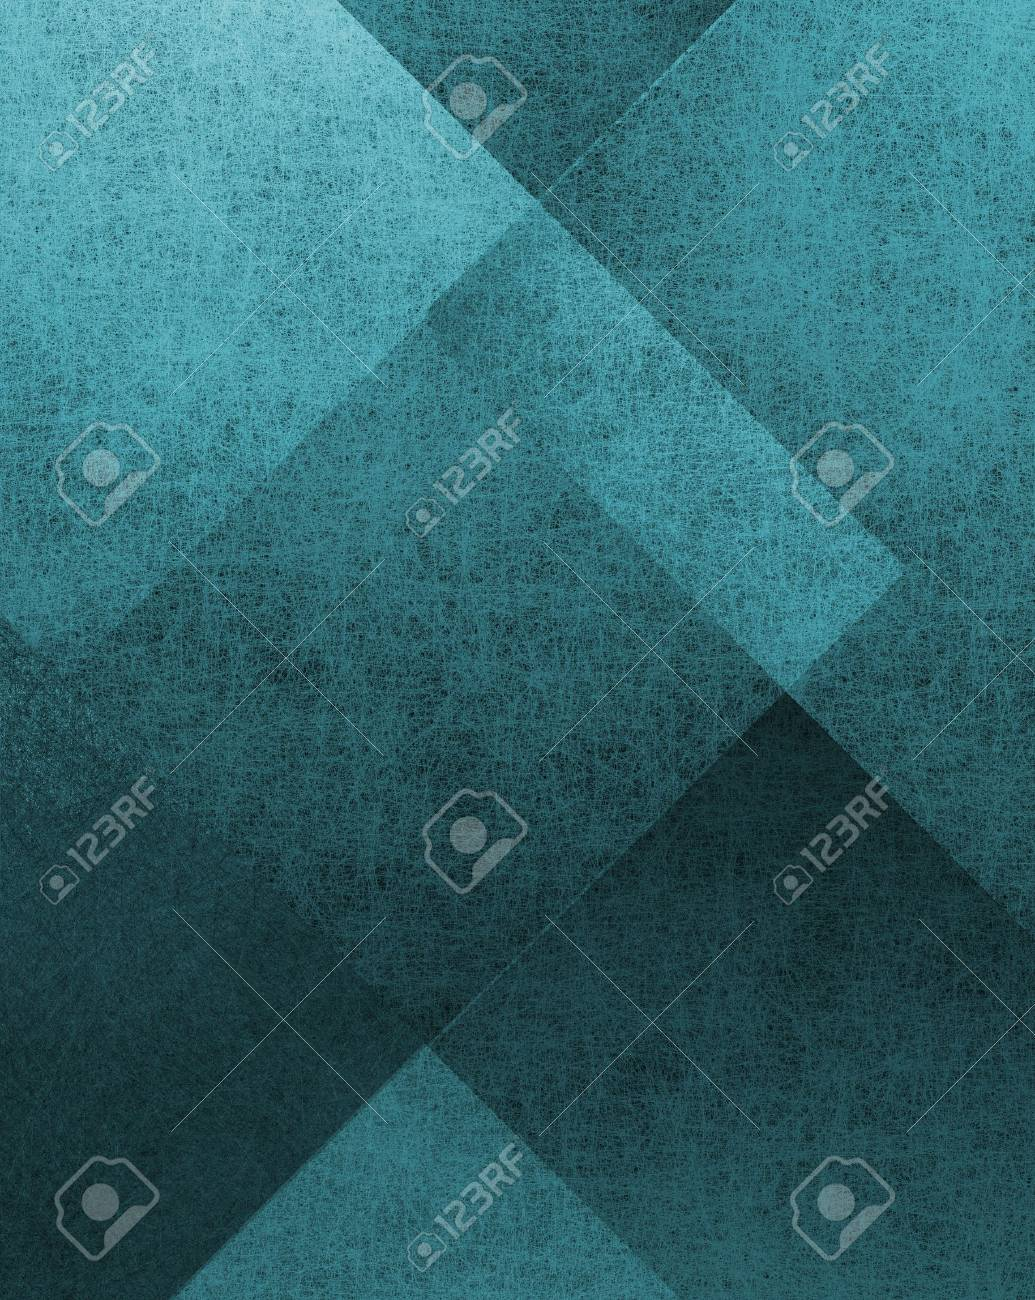 abstract blue background with vintage grunge designs Stock Photo - 11331097